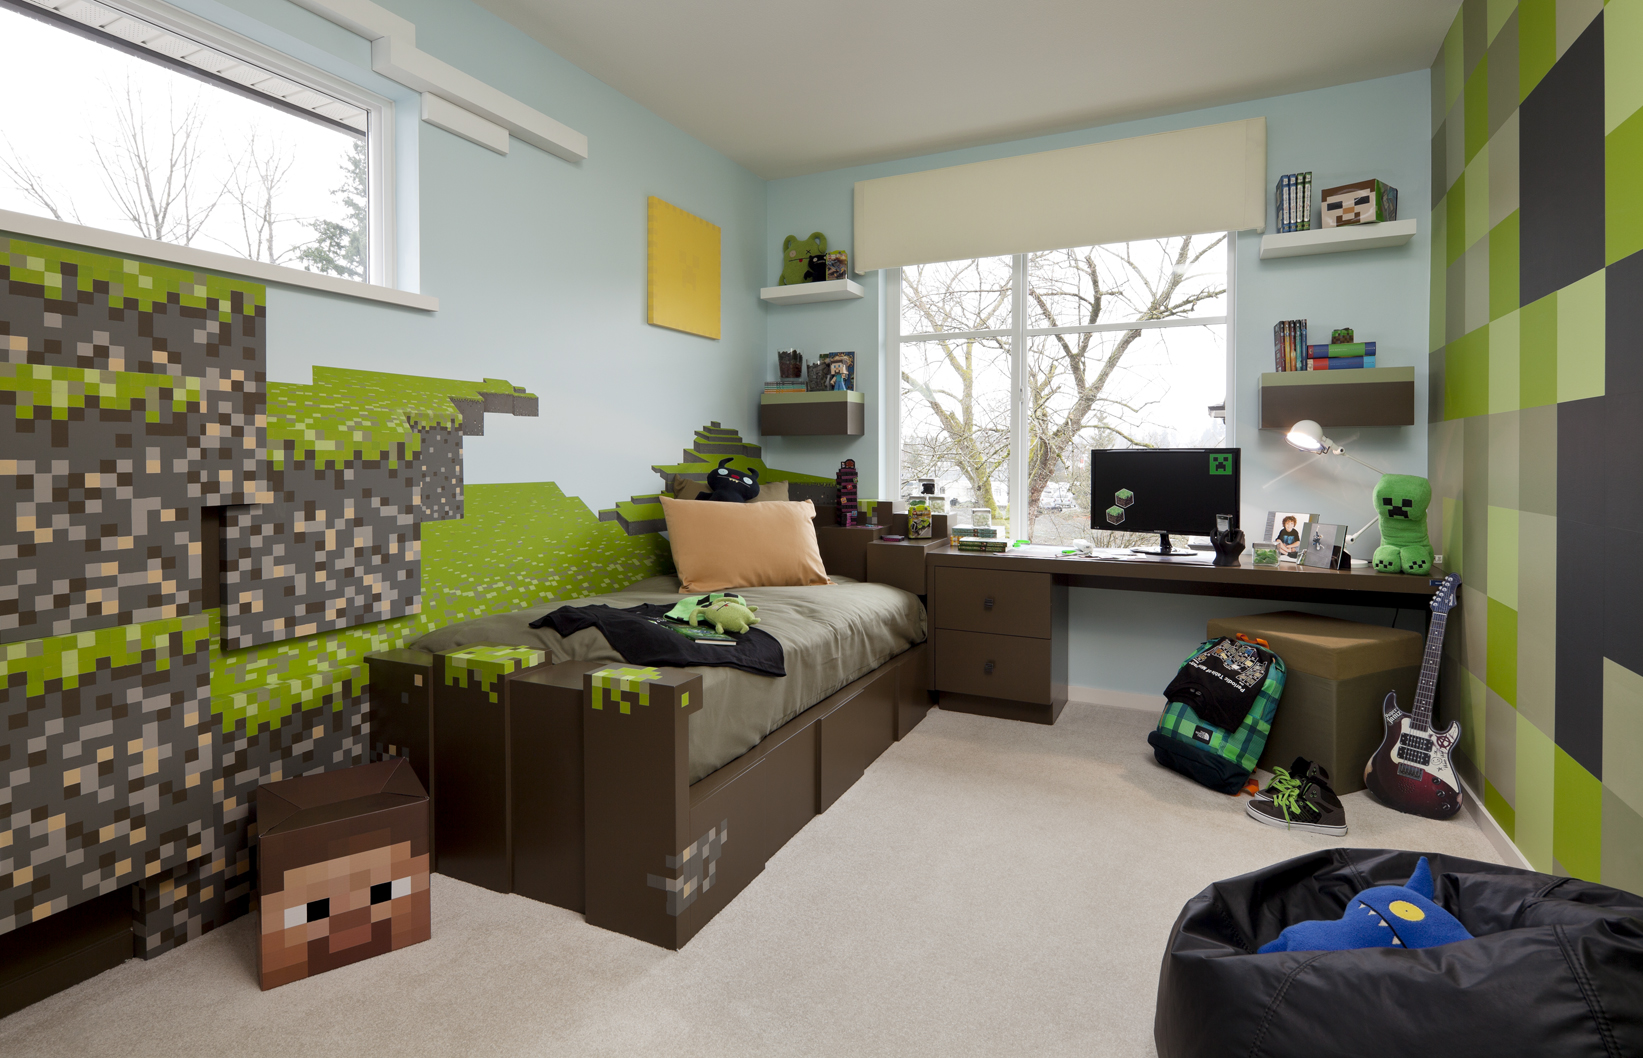 minecraft bedroom ideas in real life house made of paper On minecraft bedroom designs real life